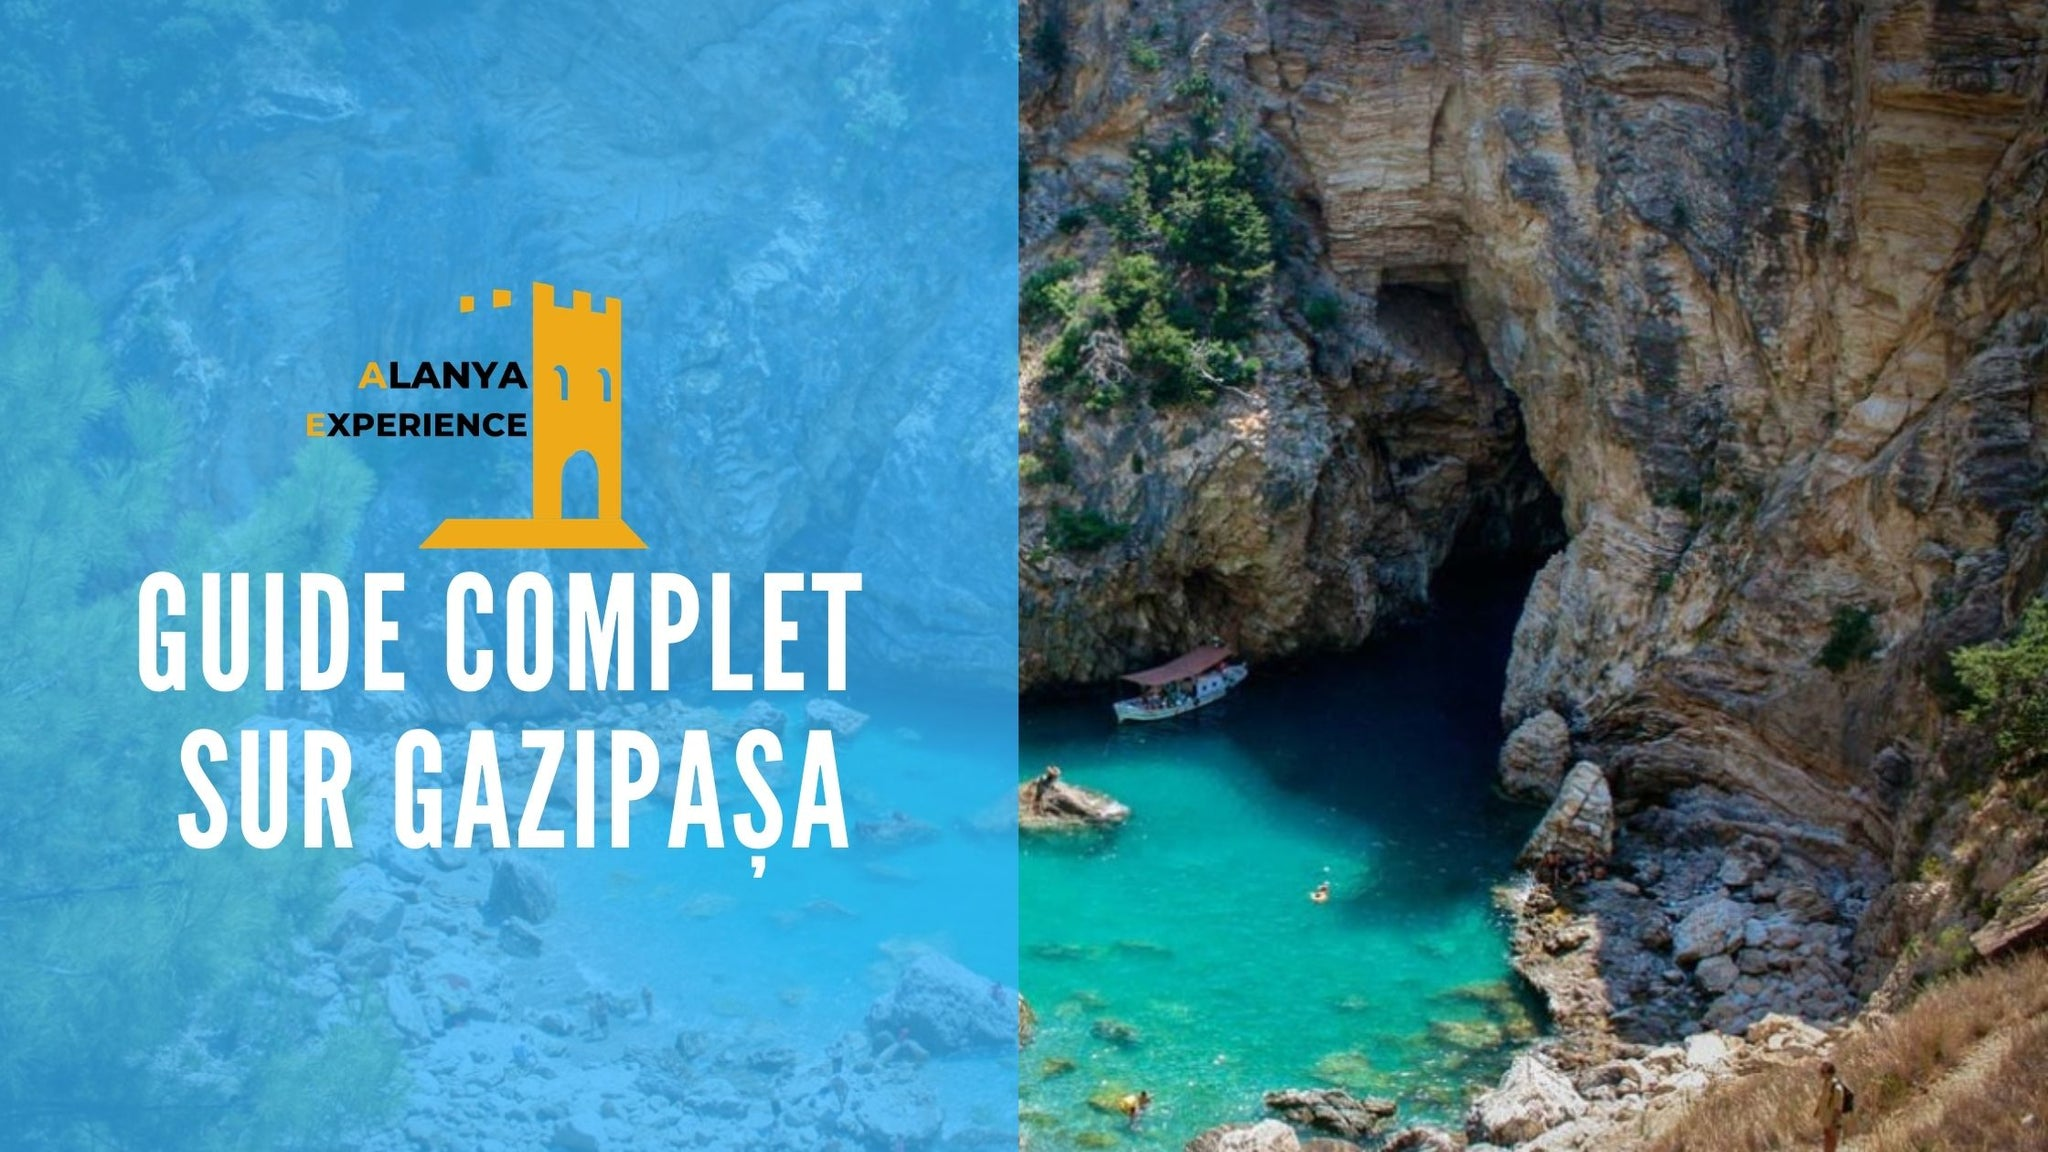 Gazipaşa guide alanya experience crique plage